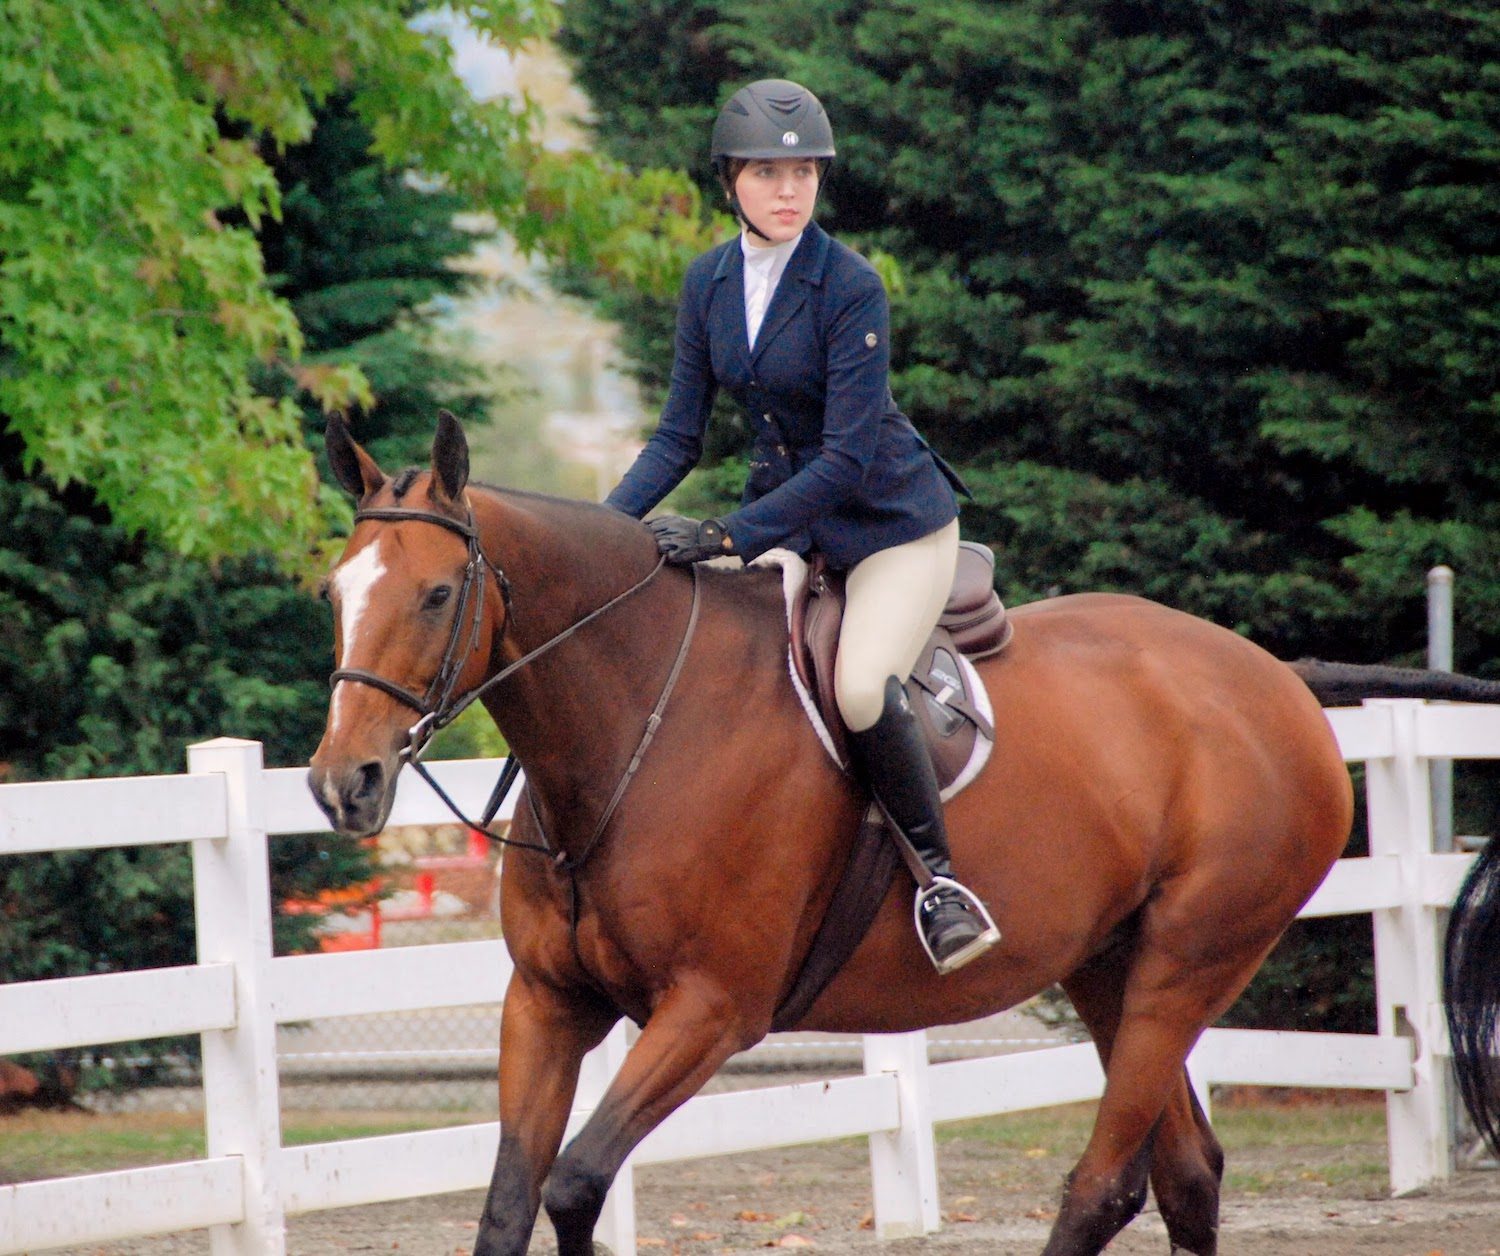 Magnolia Ridge rider showing on her horse